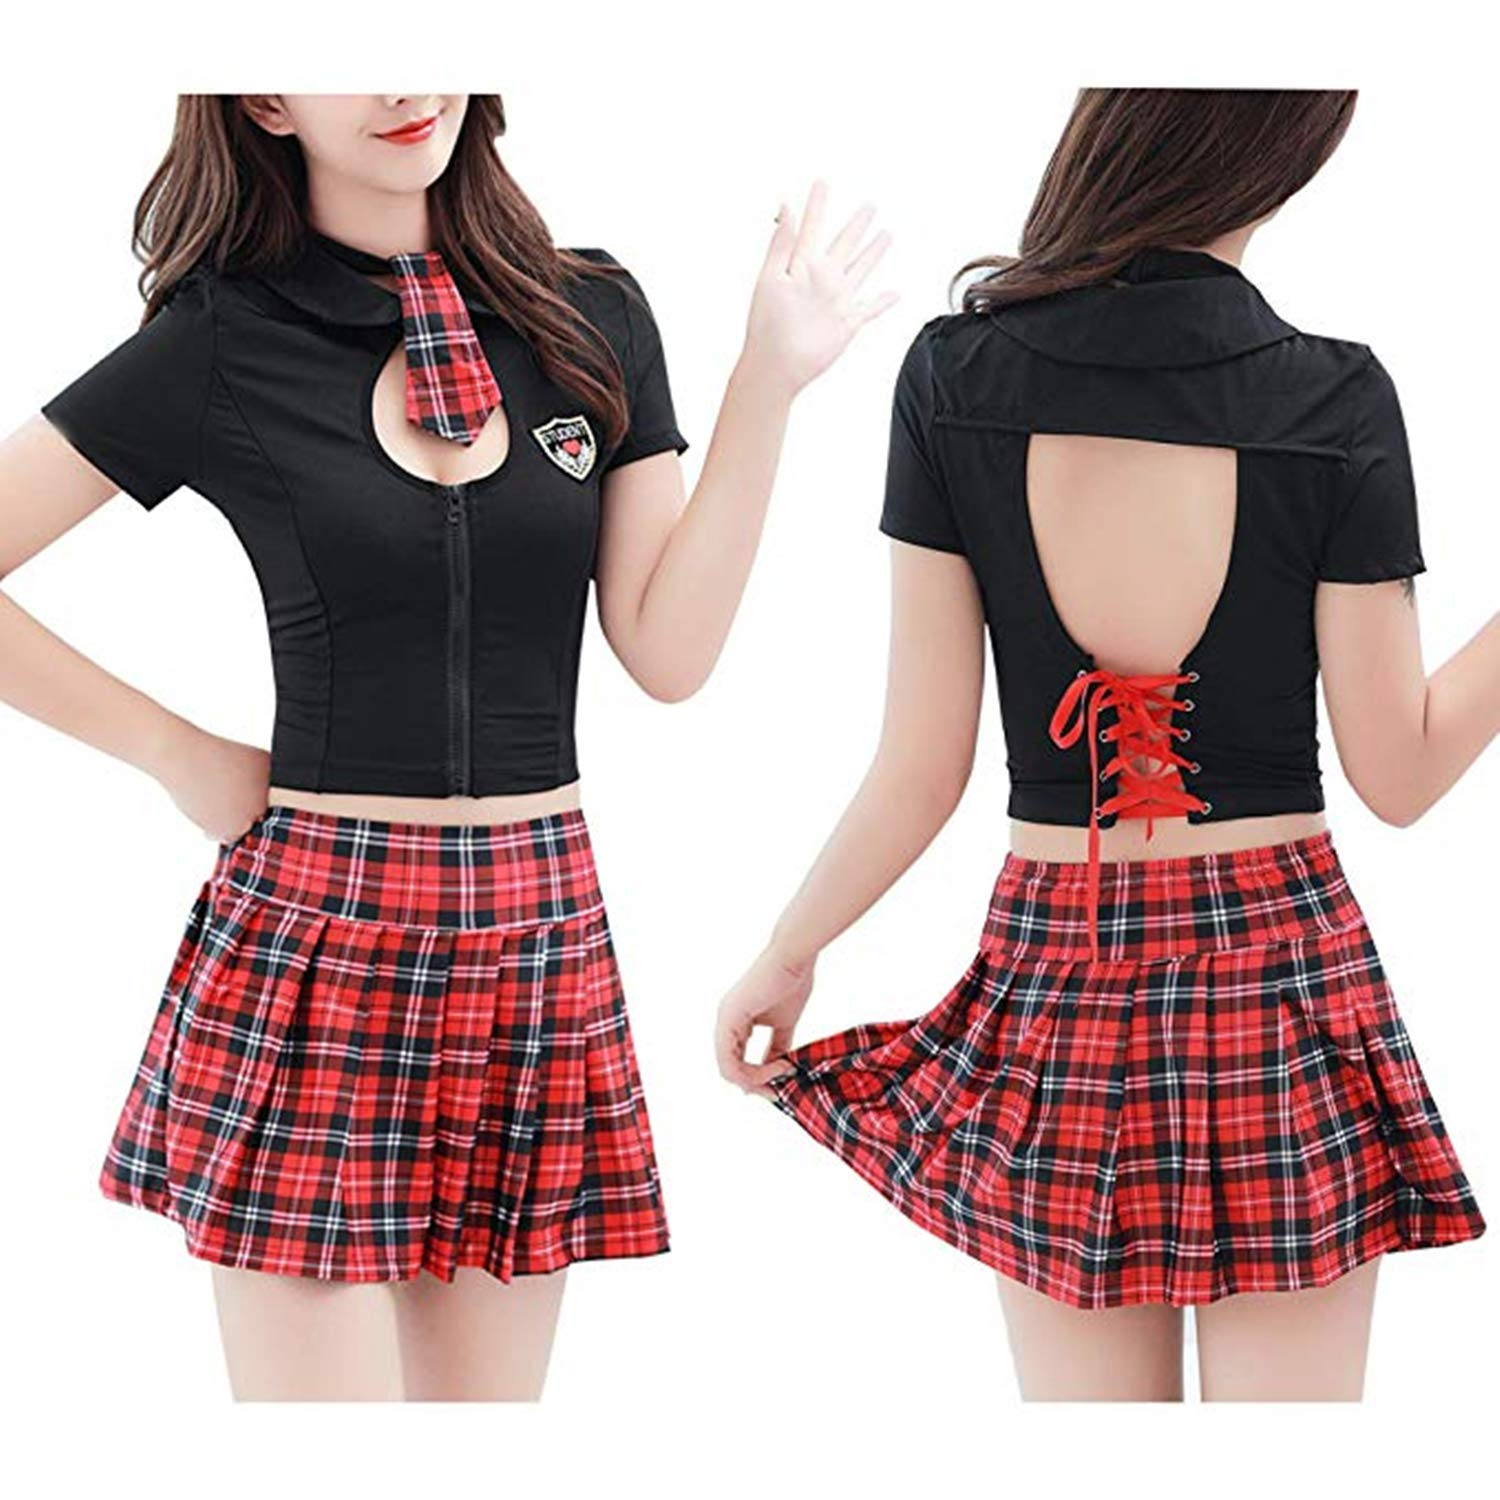 Clothing, Shoes & Accessories Realistic Sexy Womens School Girl Uniform Lingerie Dress Costume Outfit Roleplay Crop Top Costumes, Reenactment, Theater